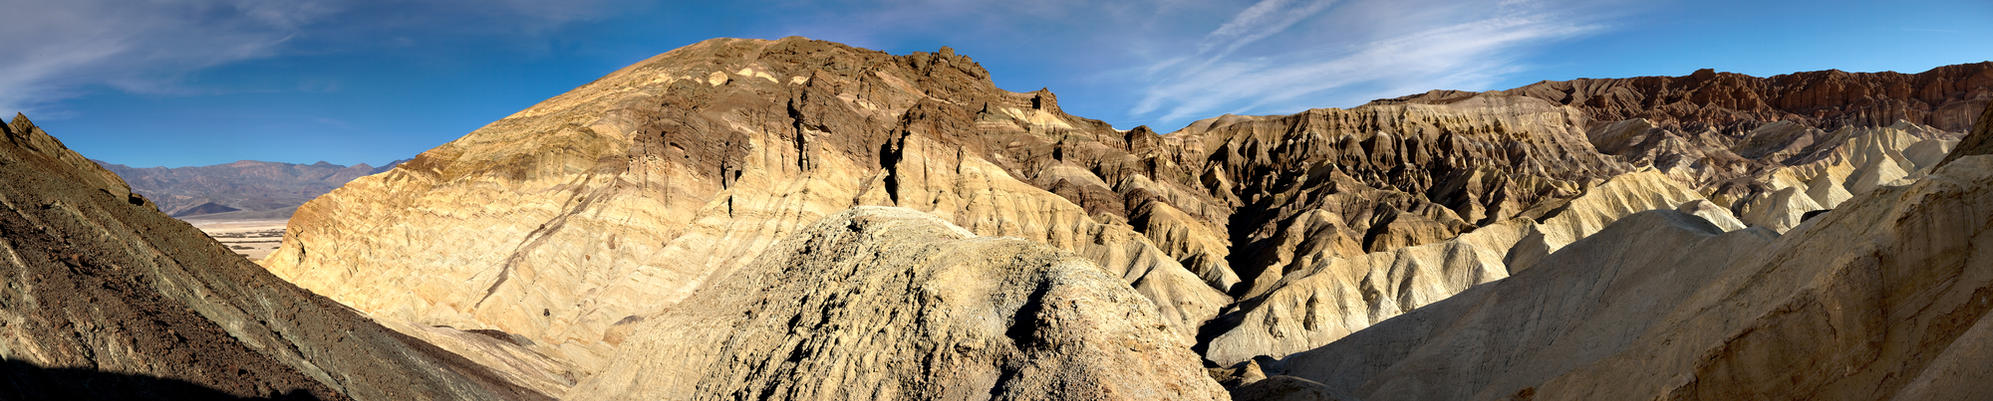 Golden Canyon -Death Valley by themobius